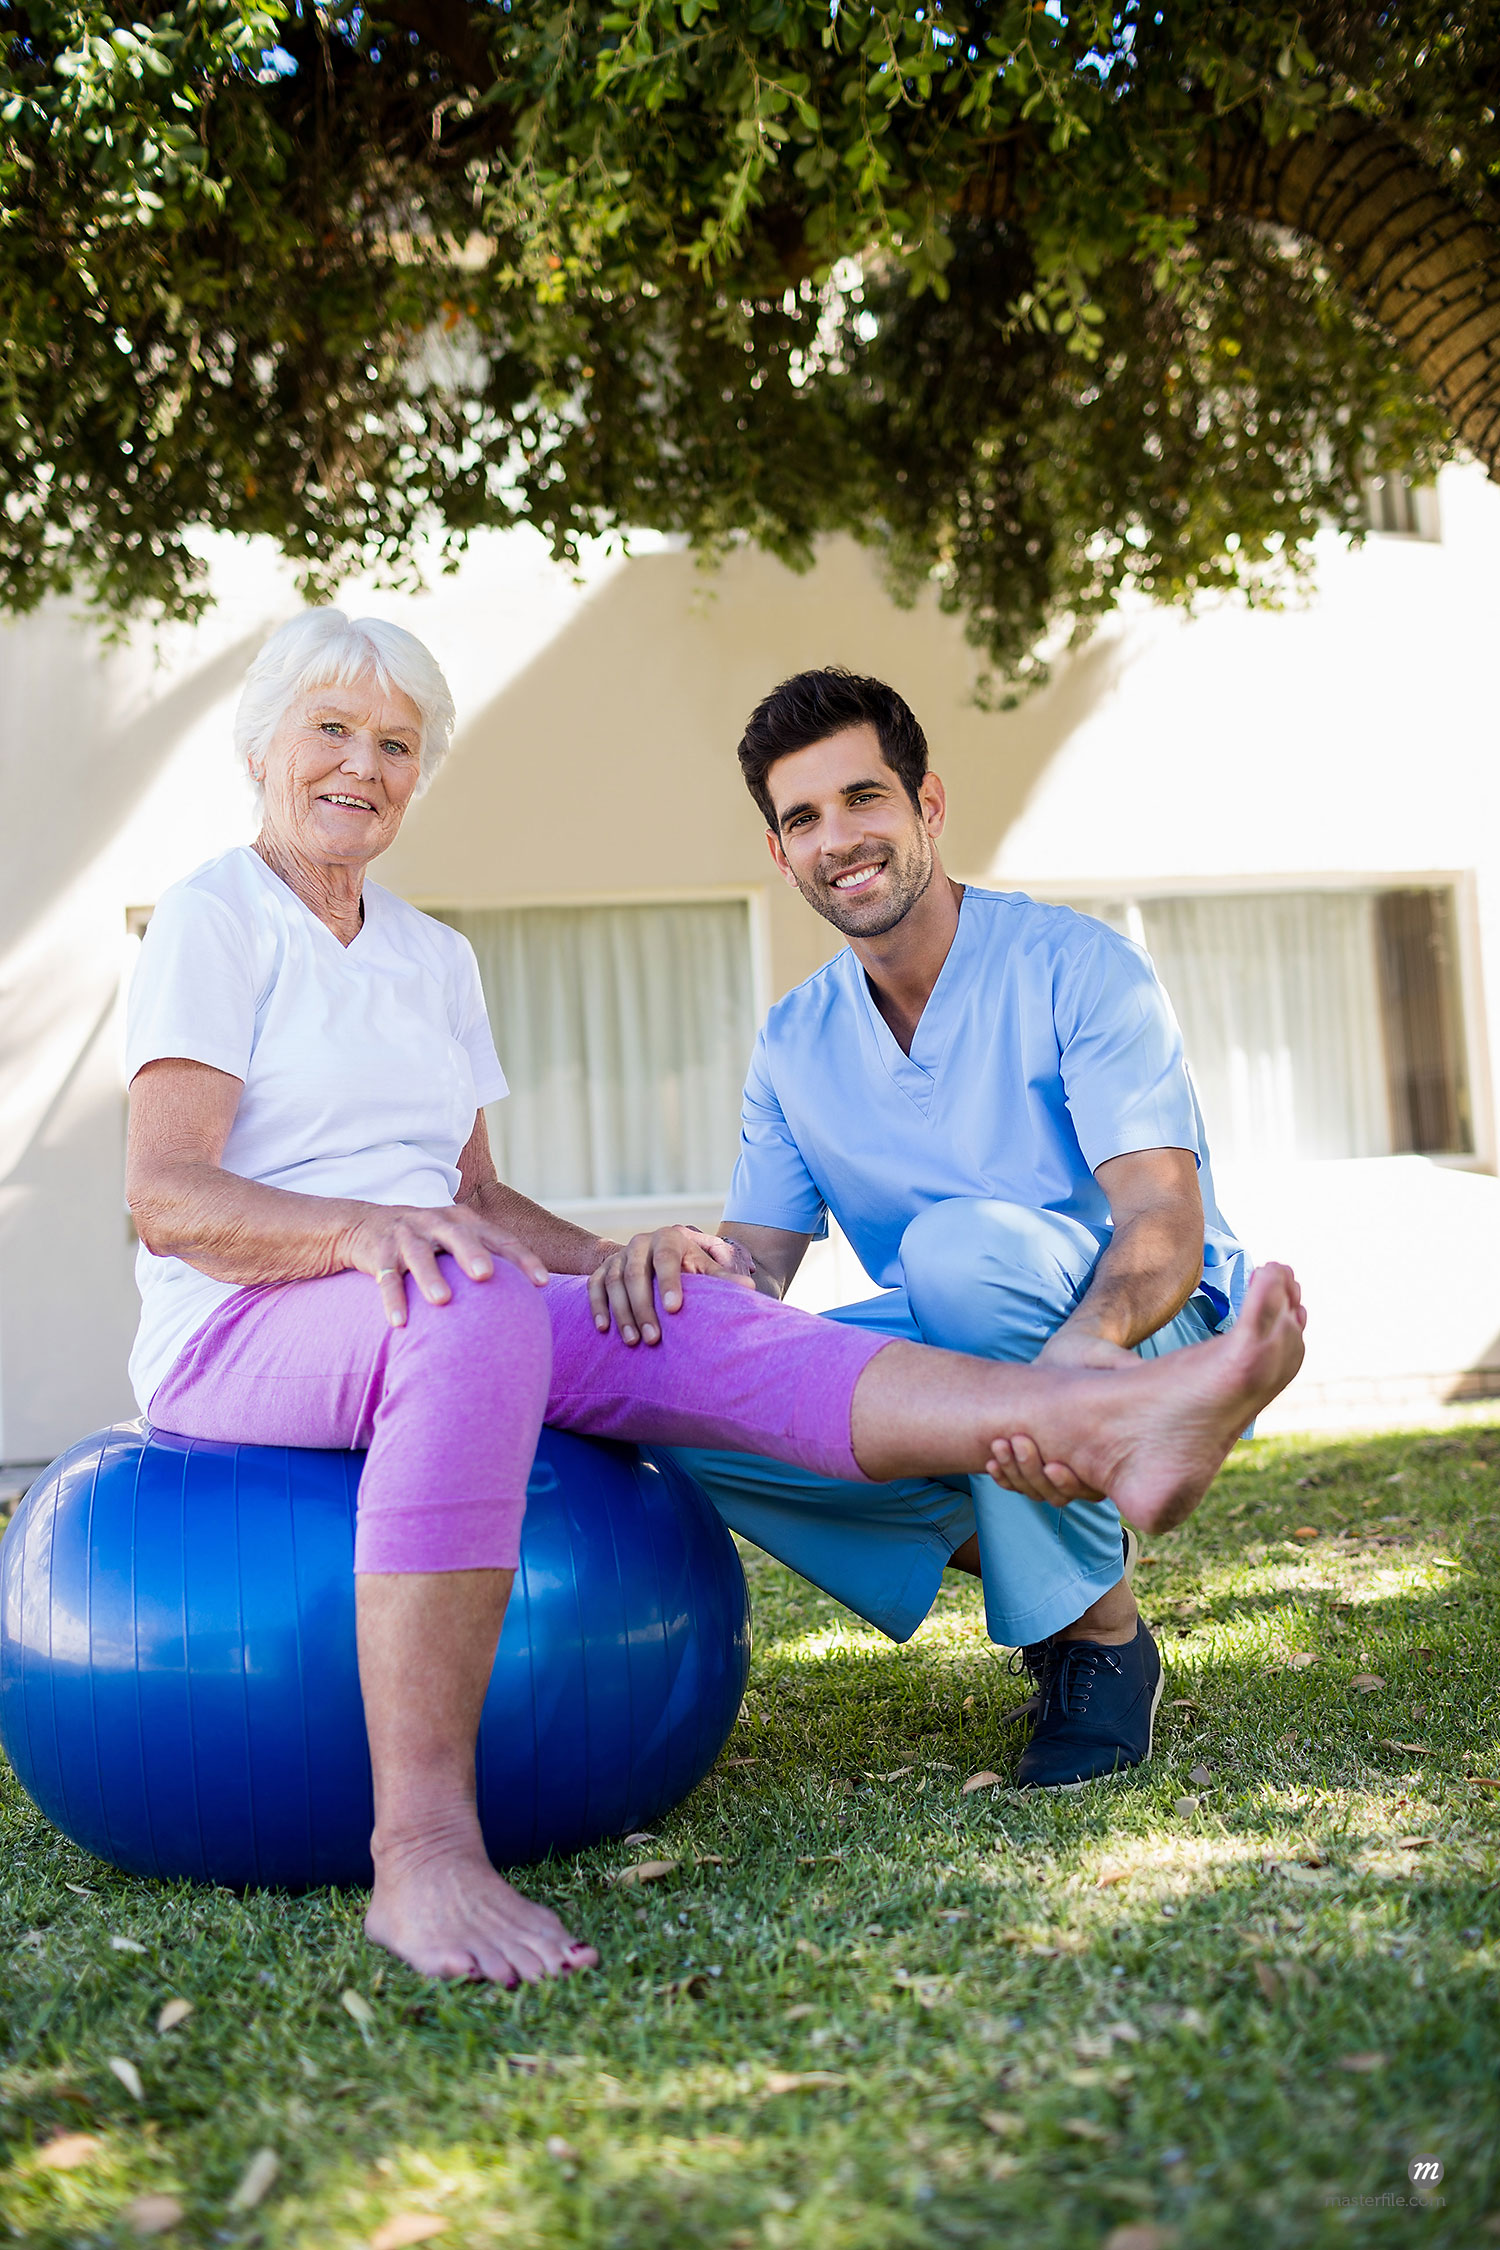 Nurse helping senior woman during exercises  © Masterfile